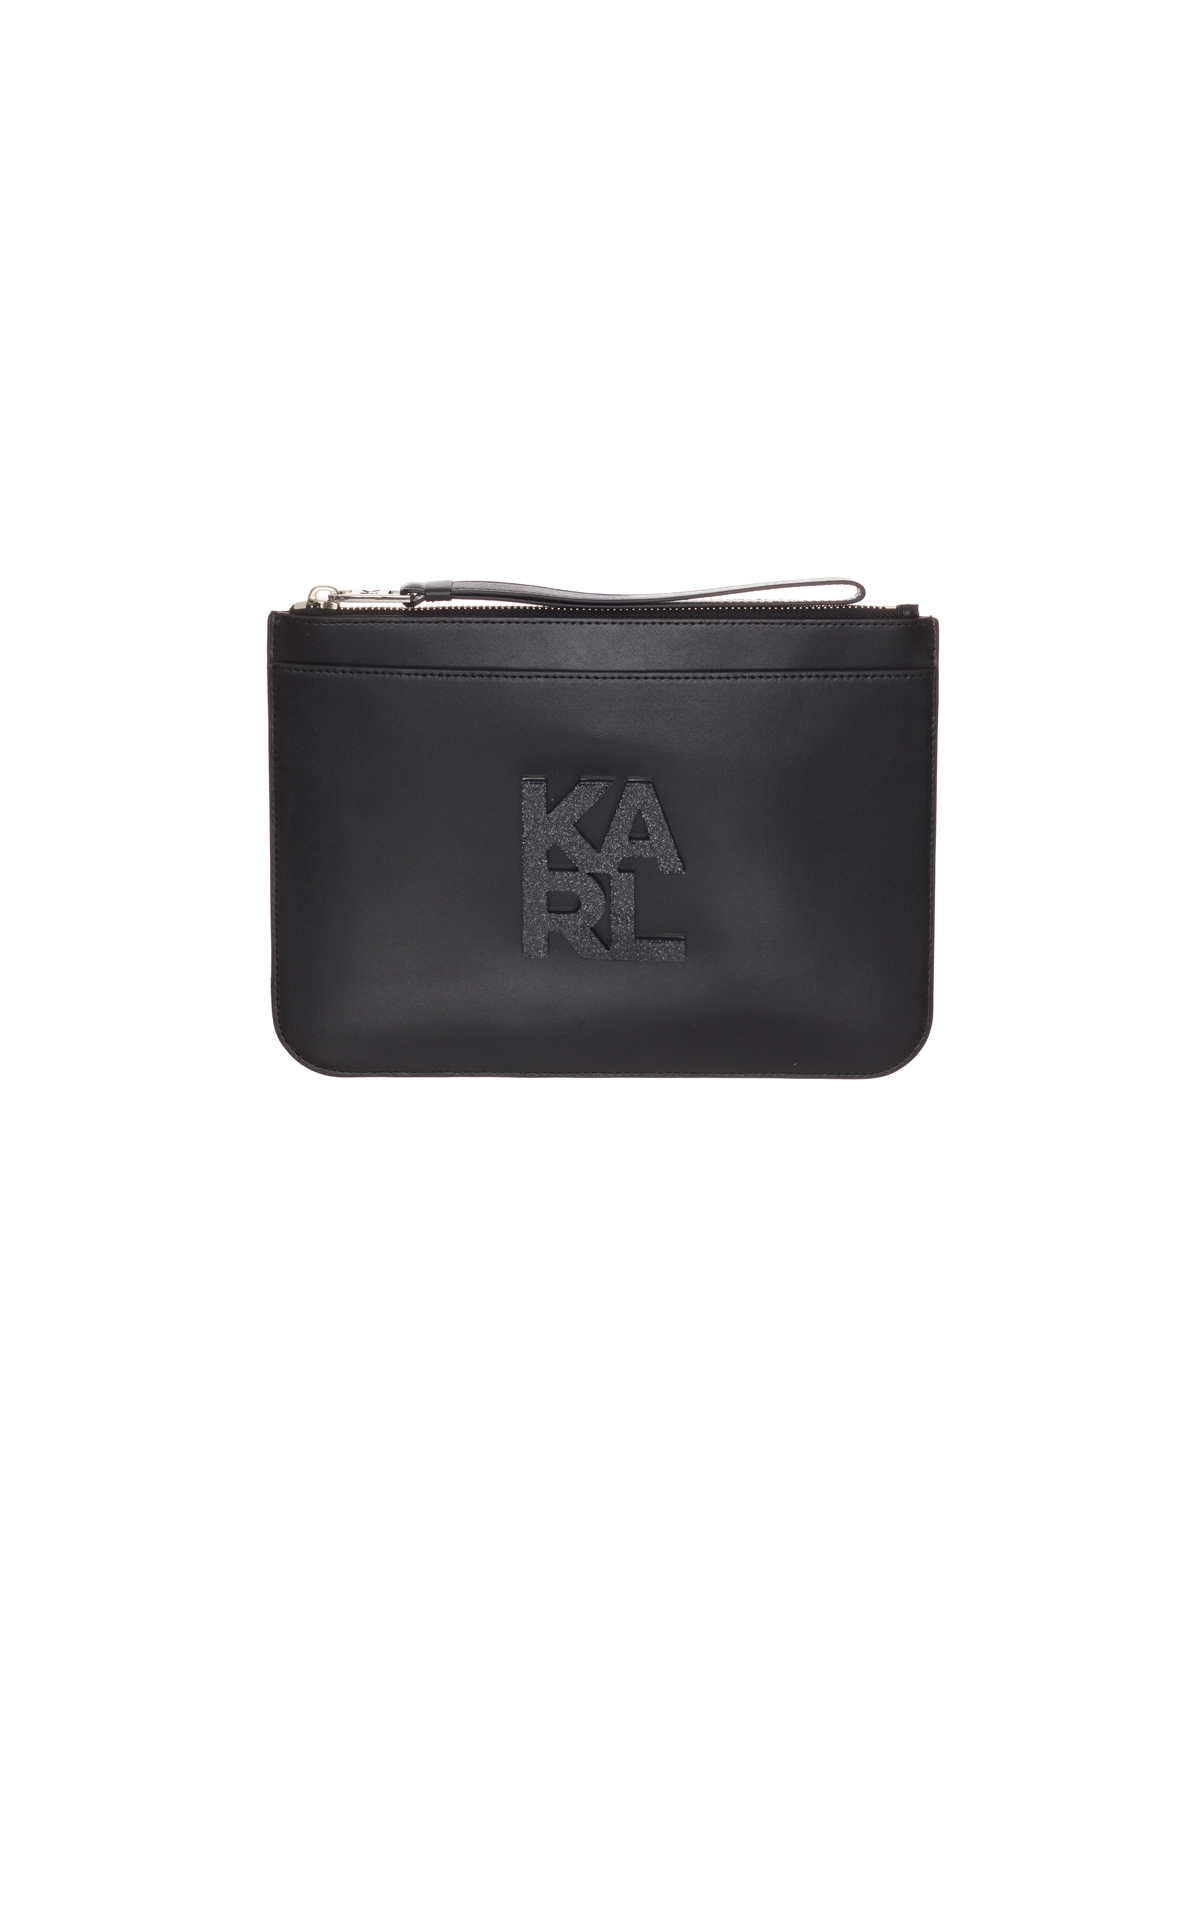 Karl Lagerfeld k/karl logo pouch at The Bicester Village Shopping Collection